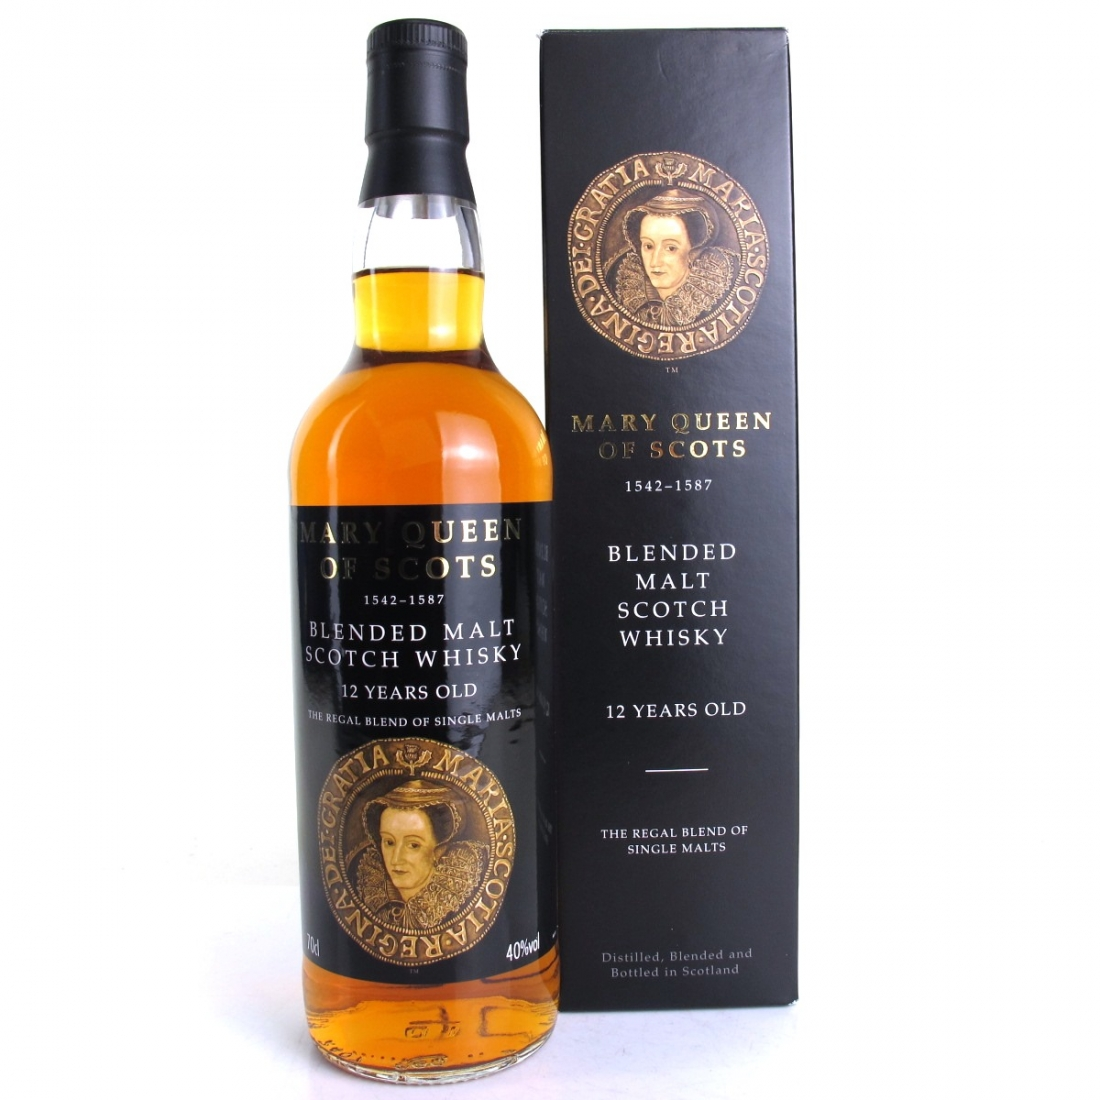 Mary Queen of Scots 12 Year Old Blended Malt